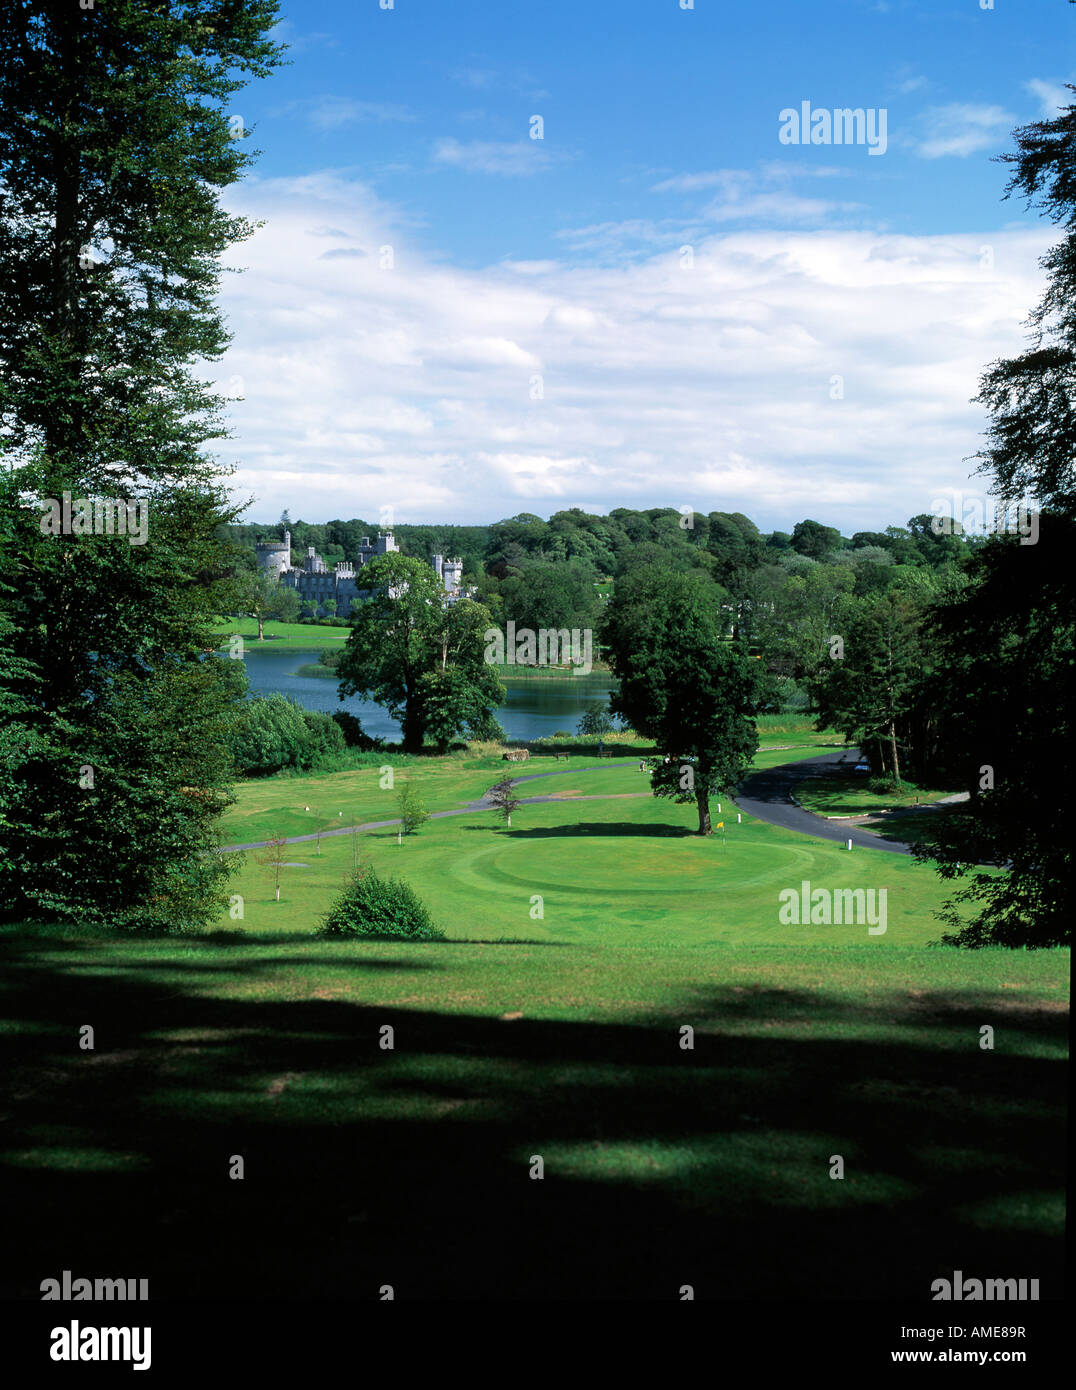 Parkland Golf Course With Castle In Background Stock Photo Alamy